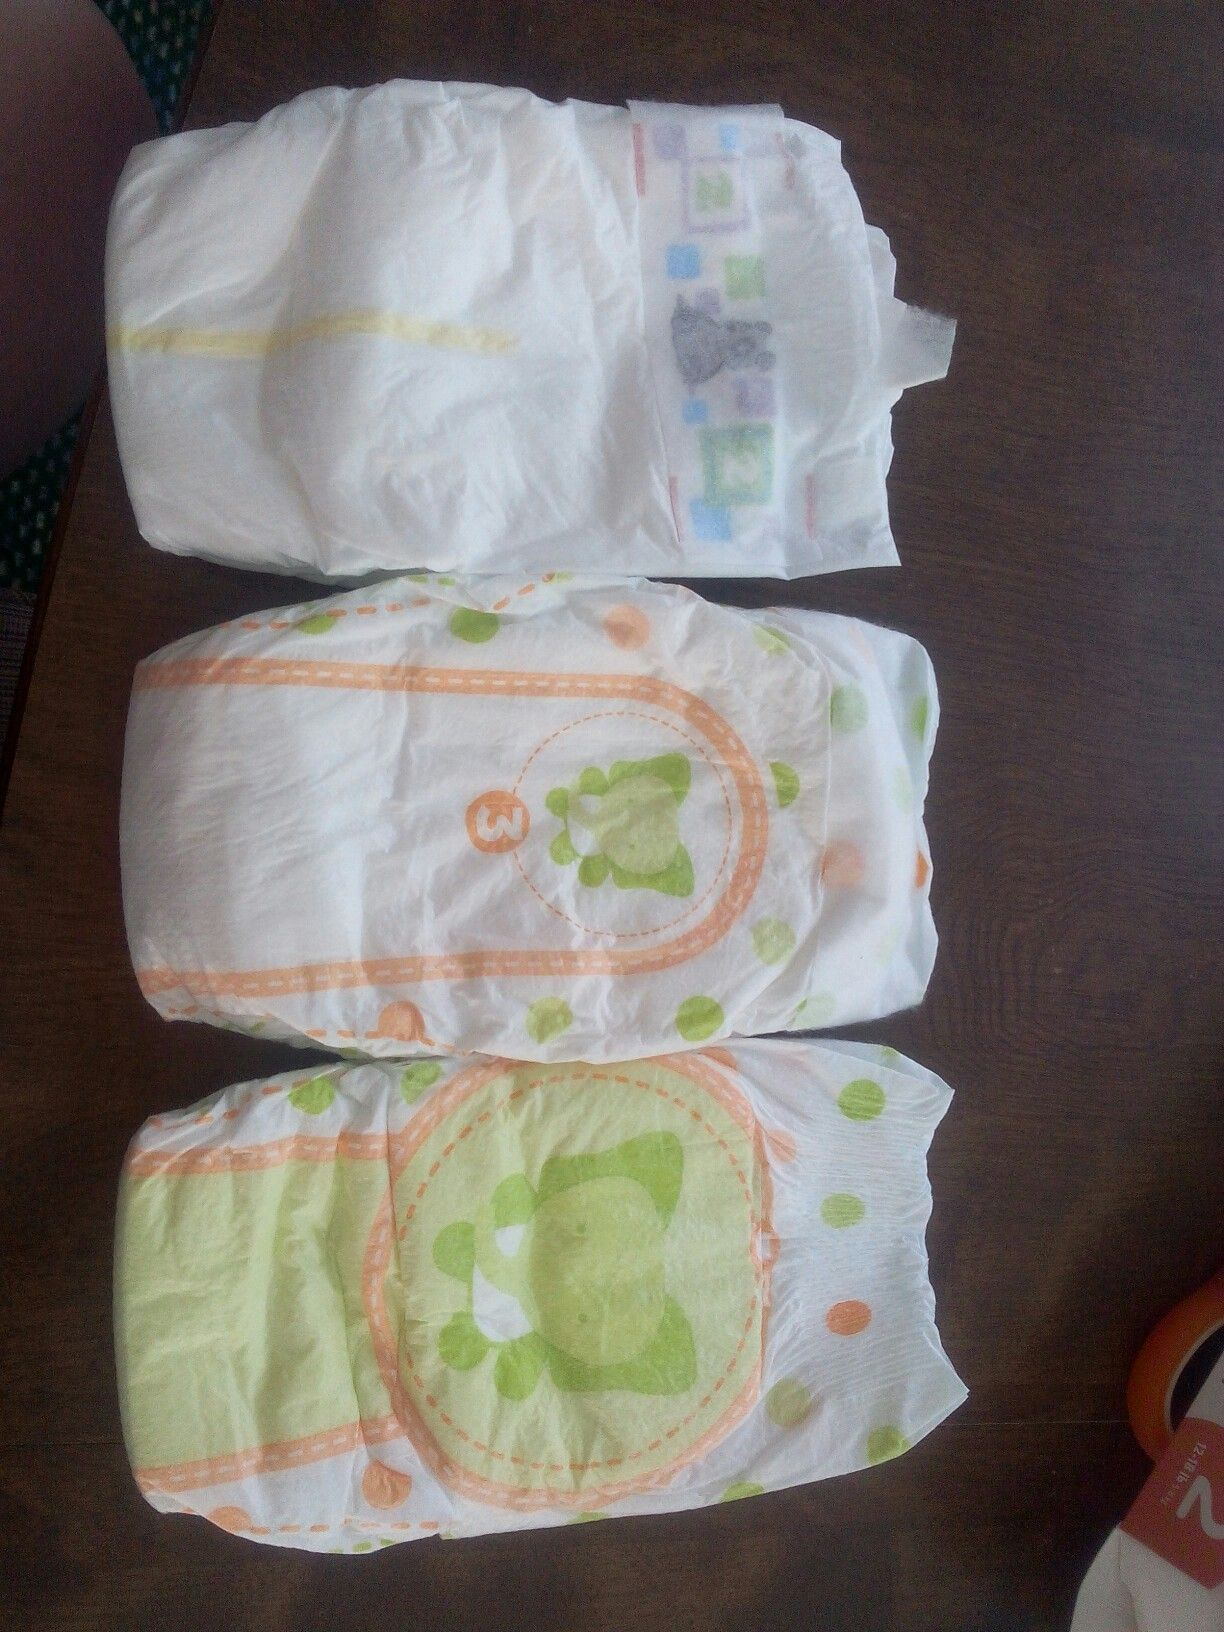 Aldi Little Journey Diapers The One On Top Is Size 2 And The Bottom